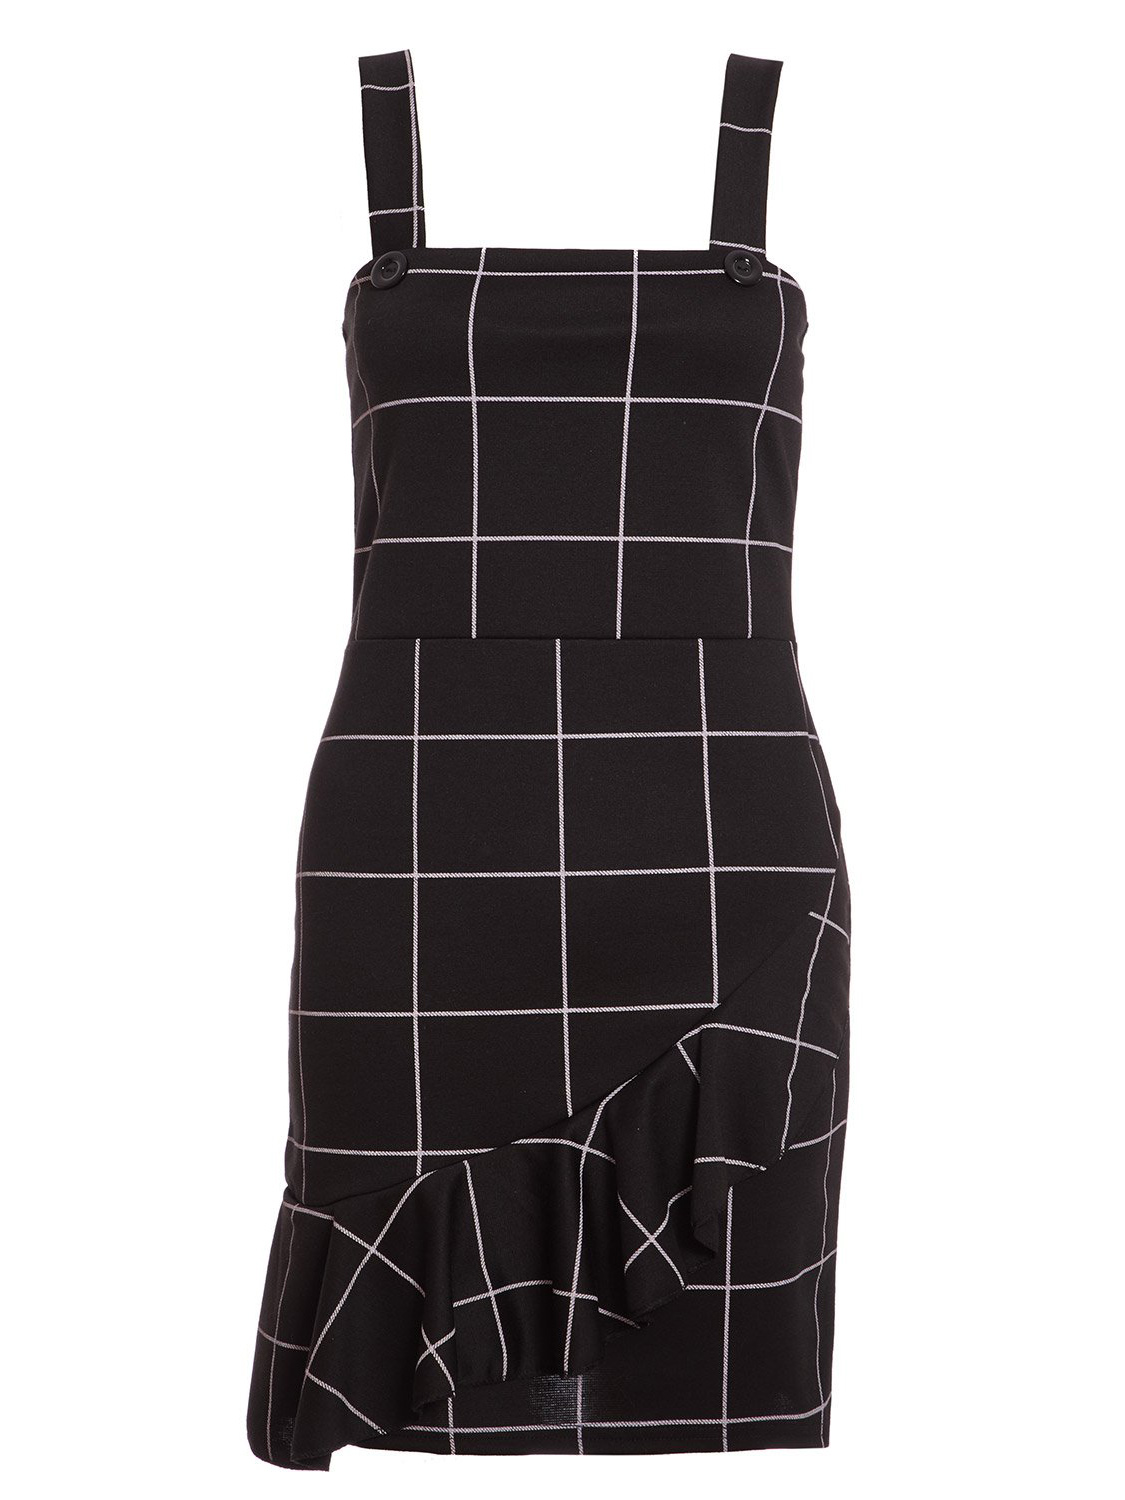 Black and Cream Check Button Pinafore (£22.99)